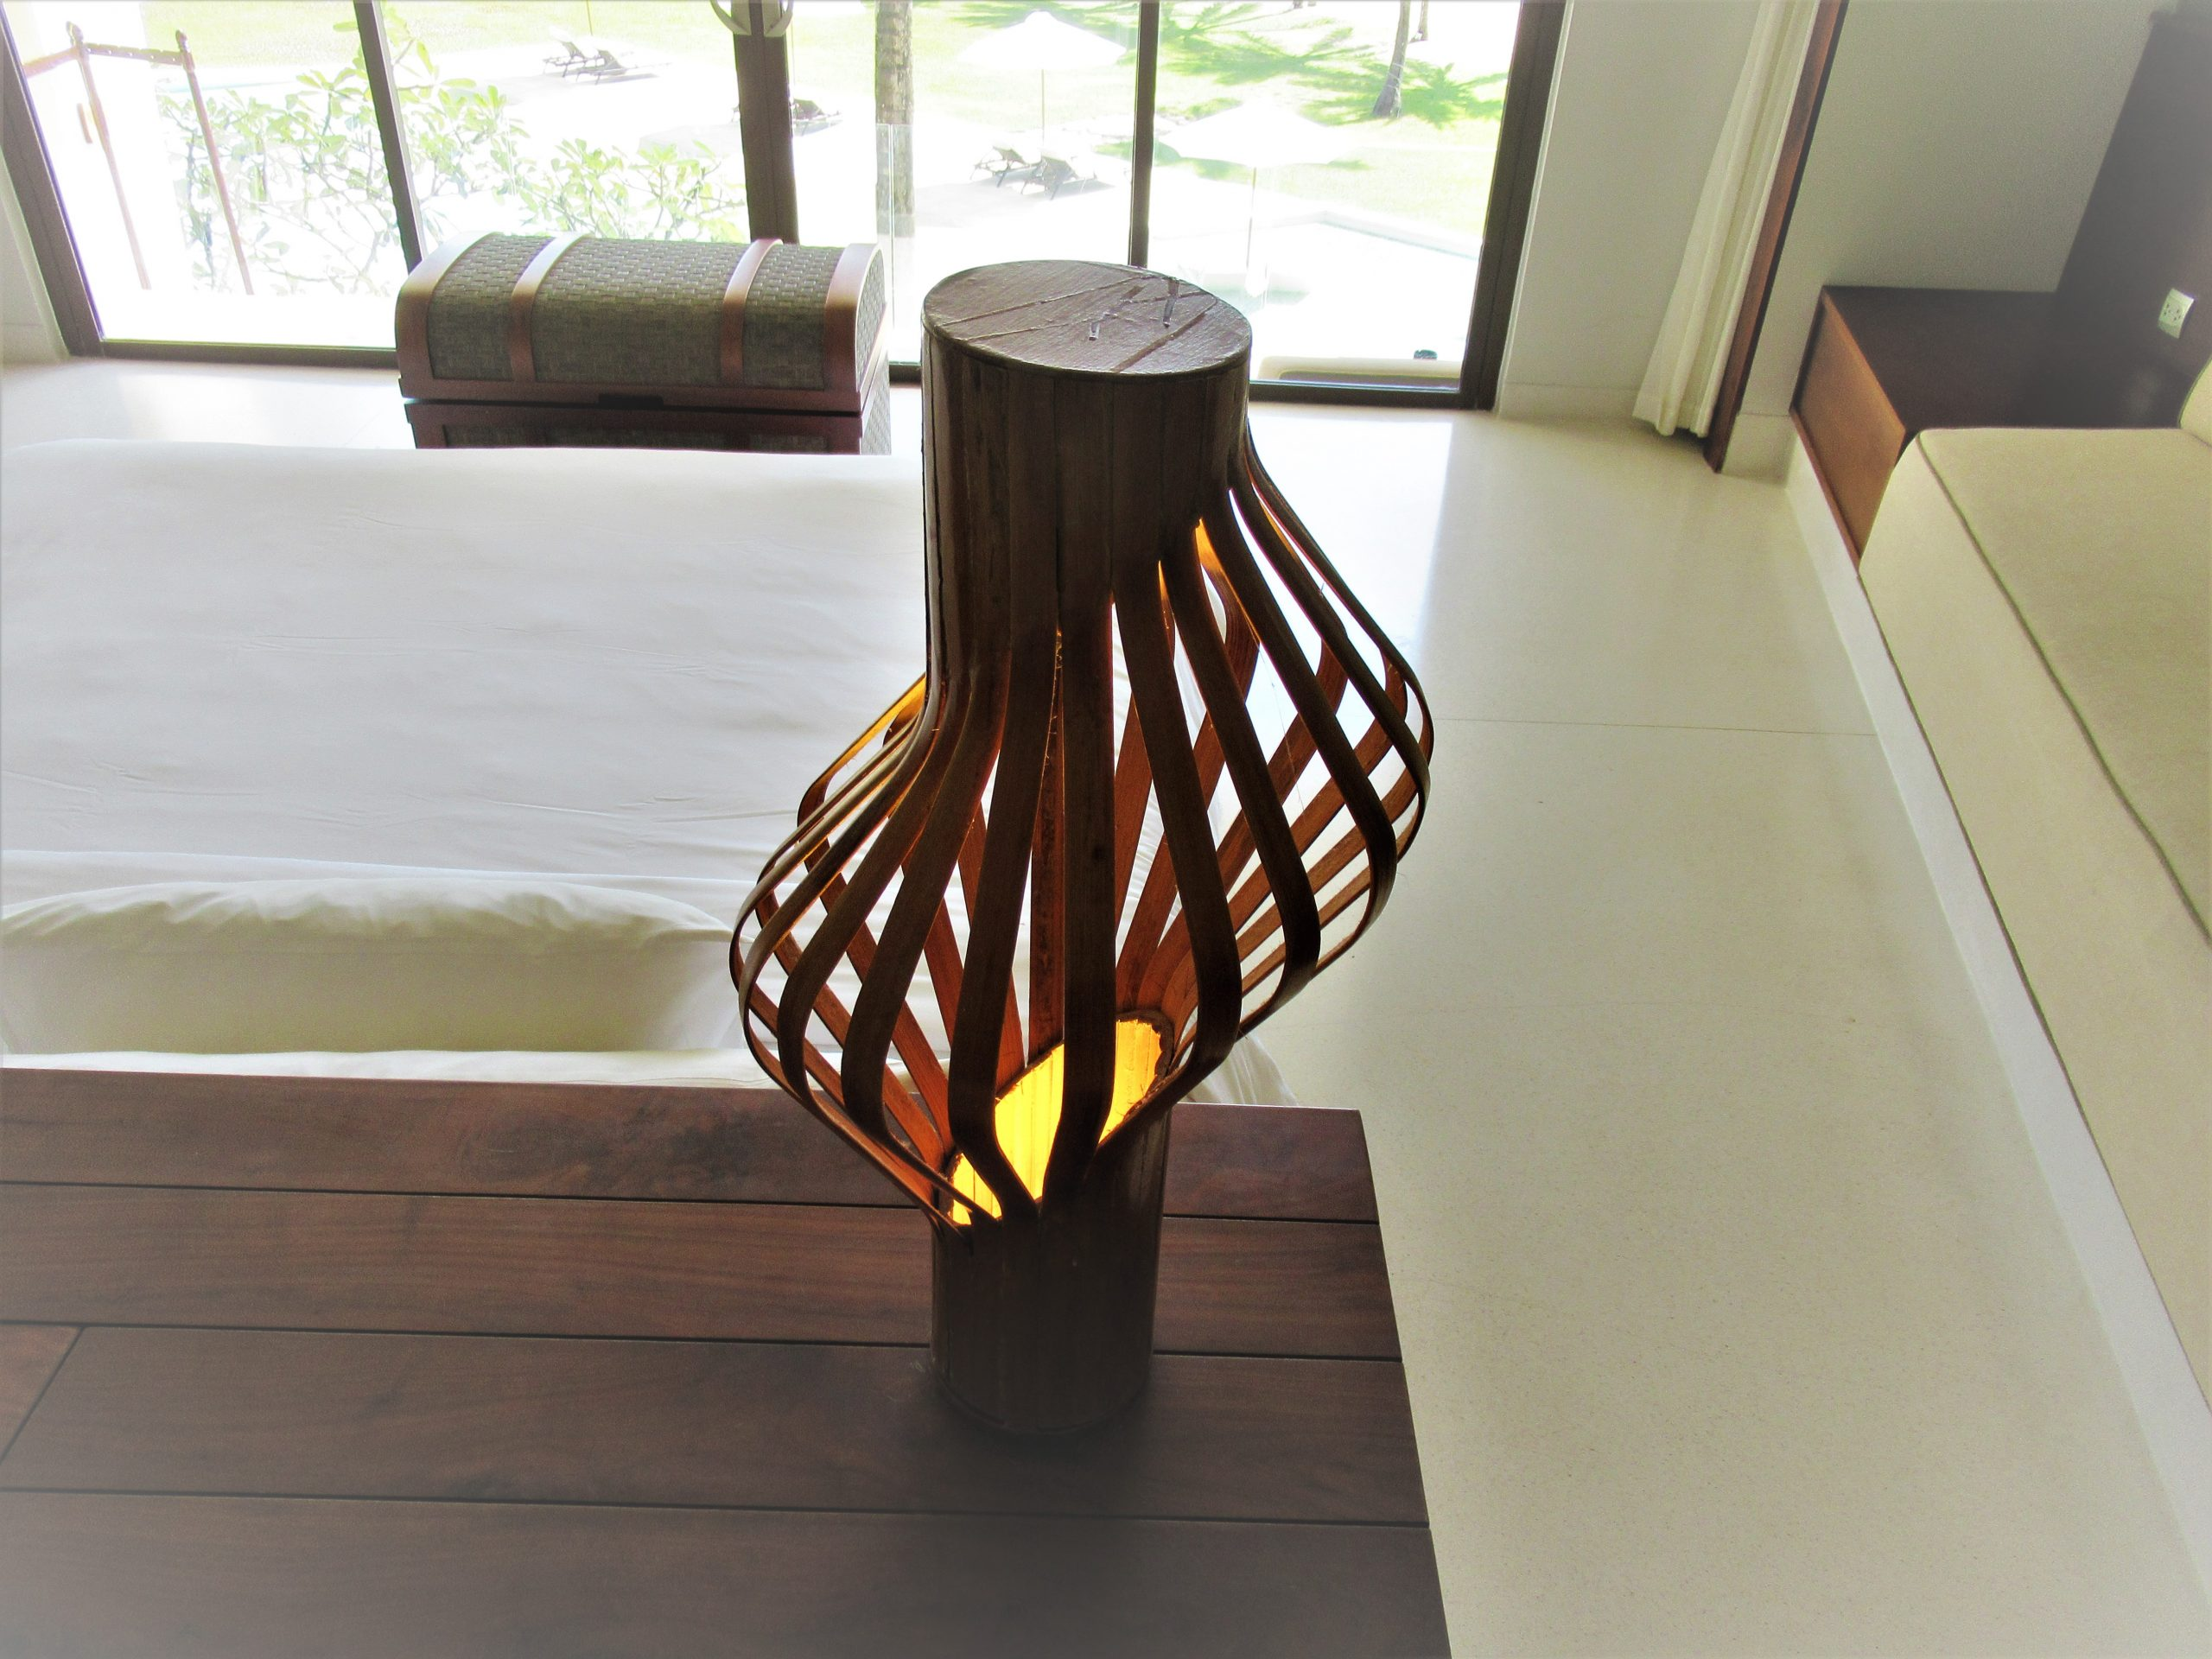 Lampshade in guest room, The Shells Resort, Phu Quoc Island, Vietnam